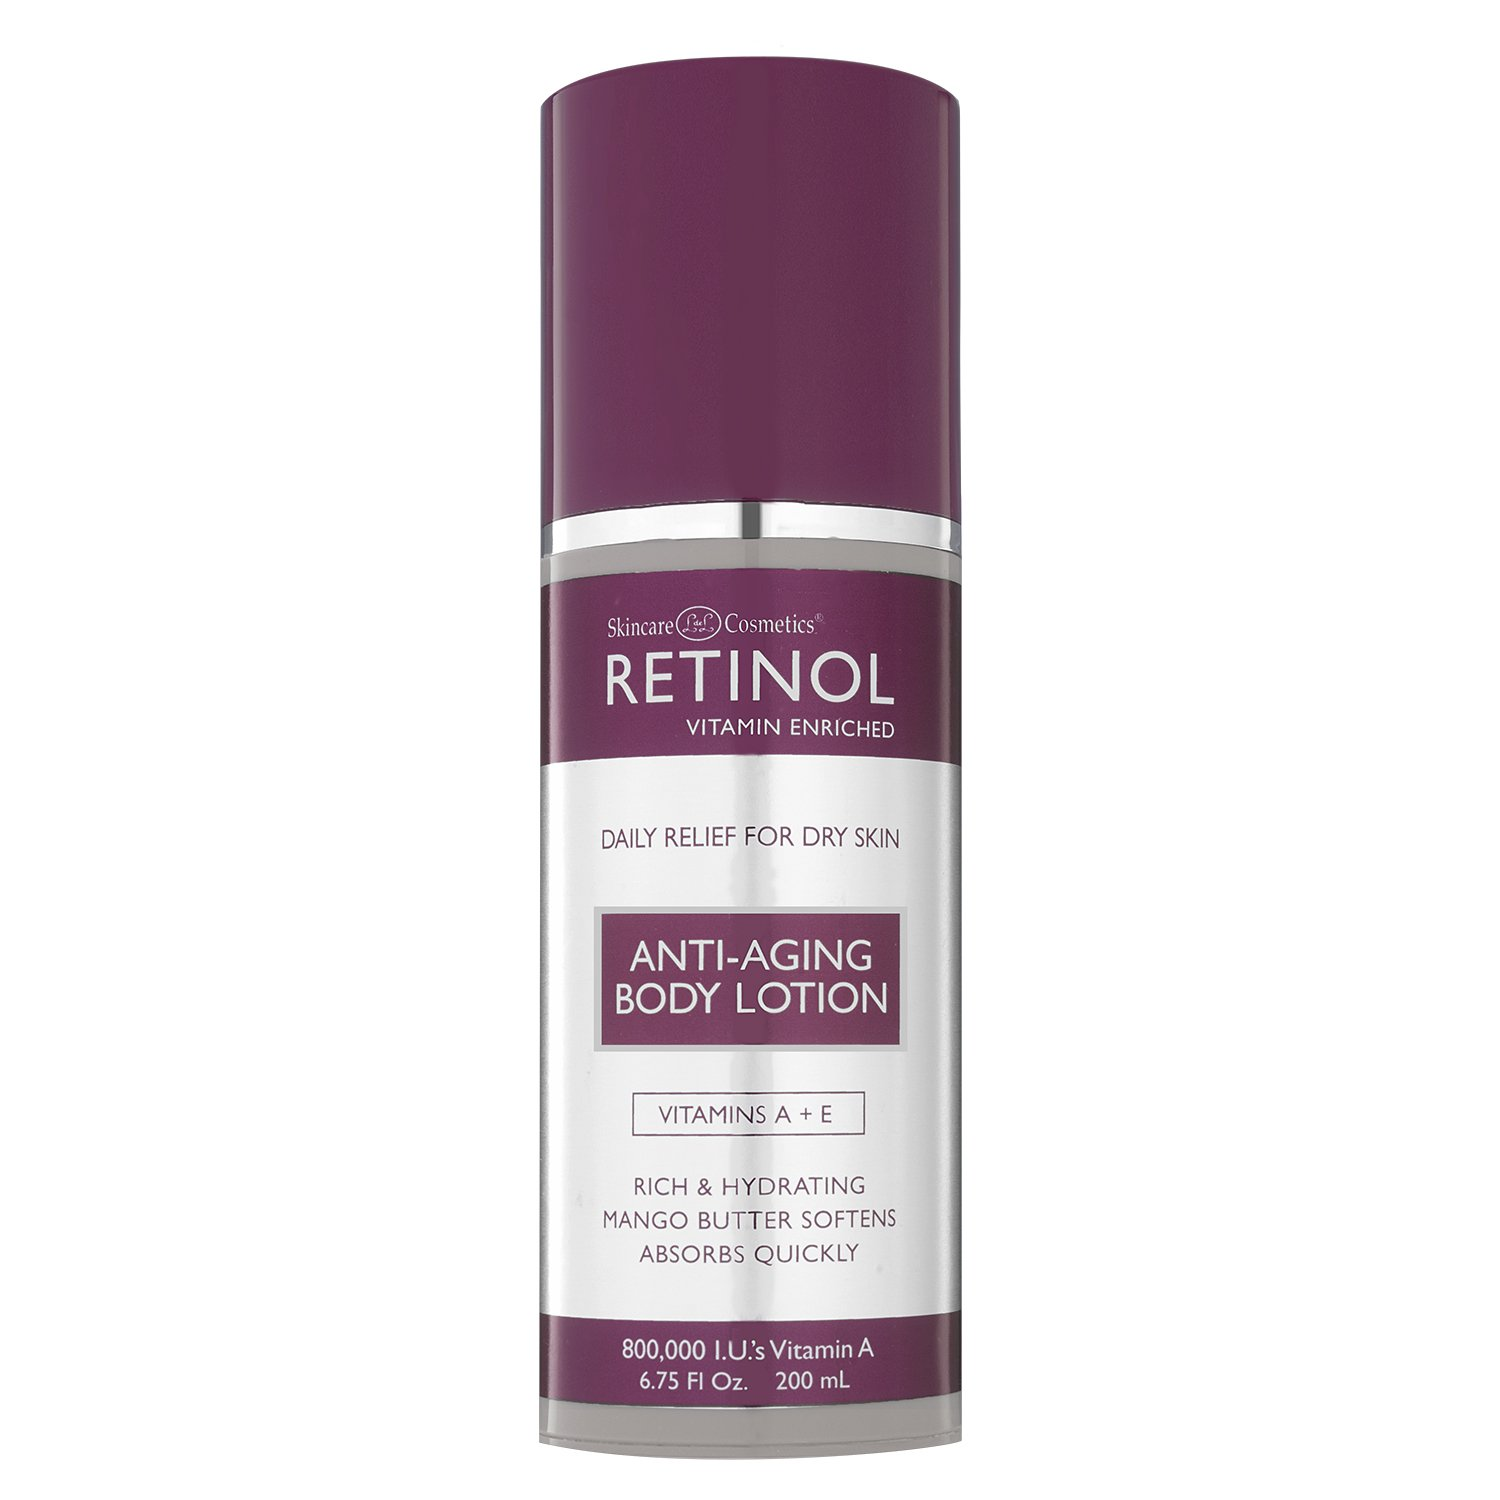 Retinol Anti-Aging Body Lotion – Corrective & Preventative Relief For Dry Skin With The Original Retinol – Luxurious Treatment Smooths Dry, Flaky Skin w/ Botanical Moisturizers & Vitamin A